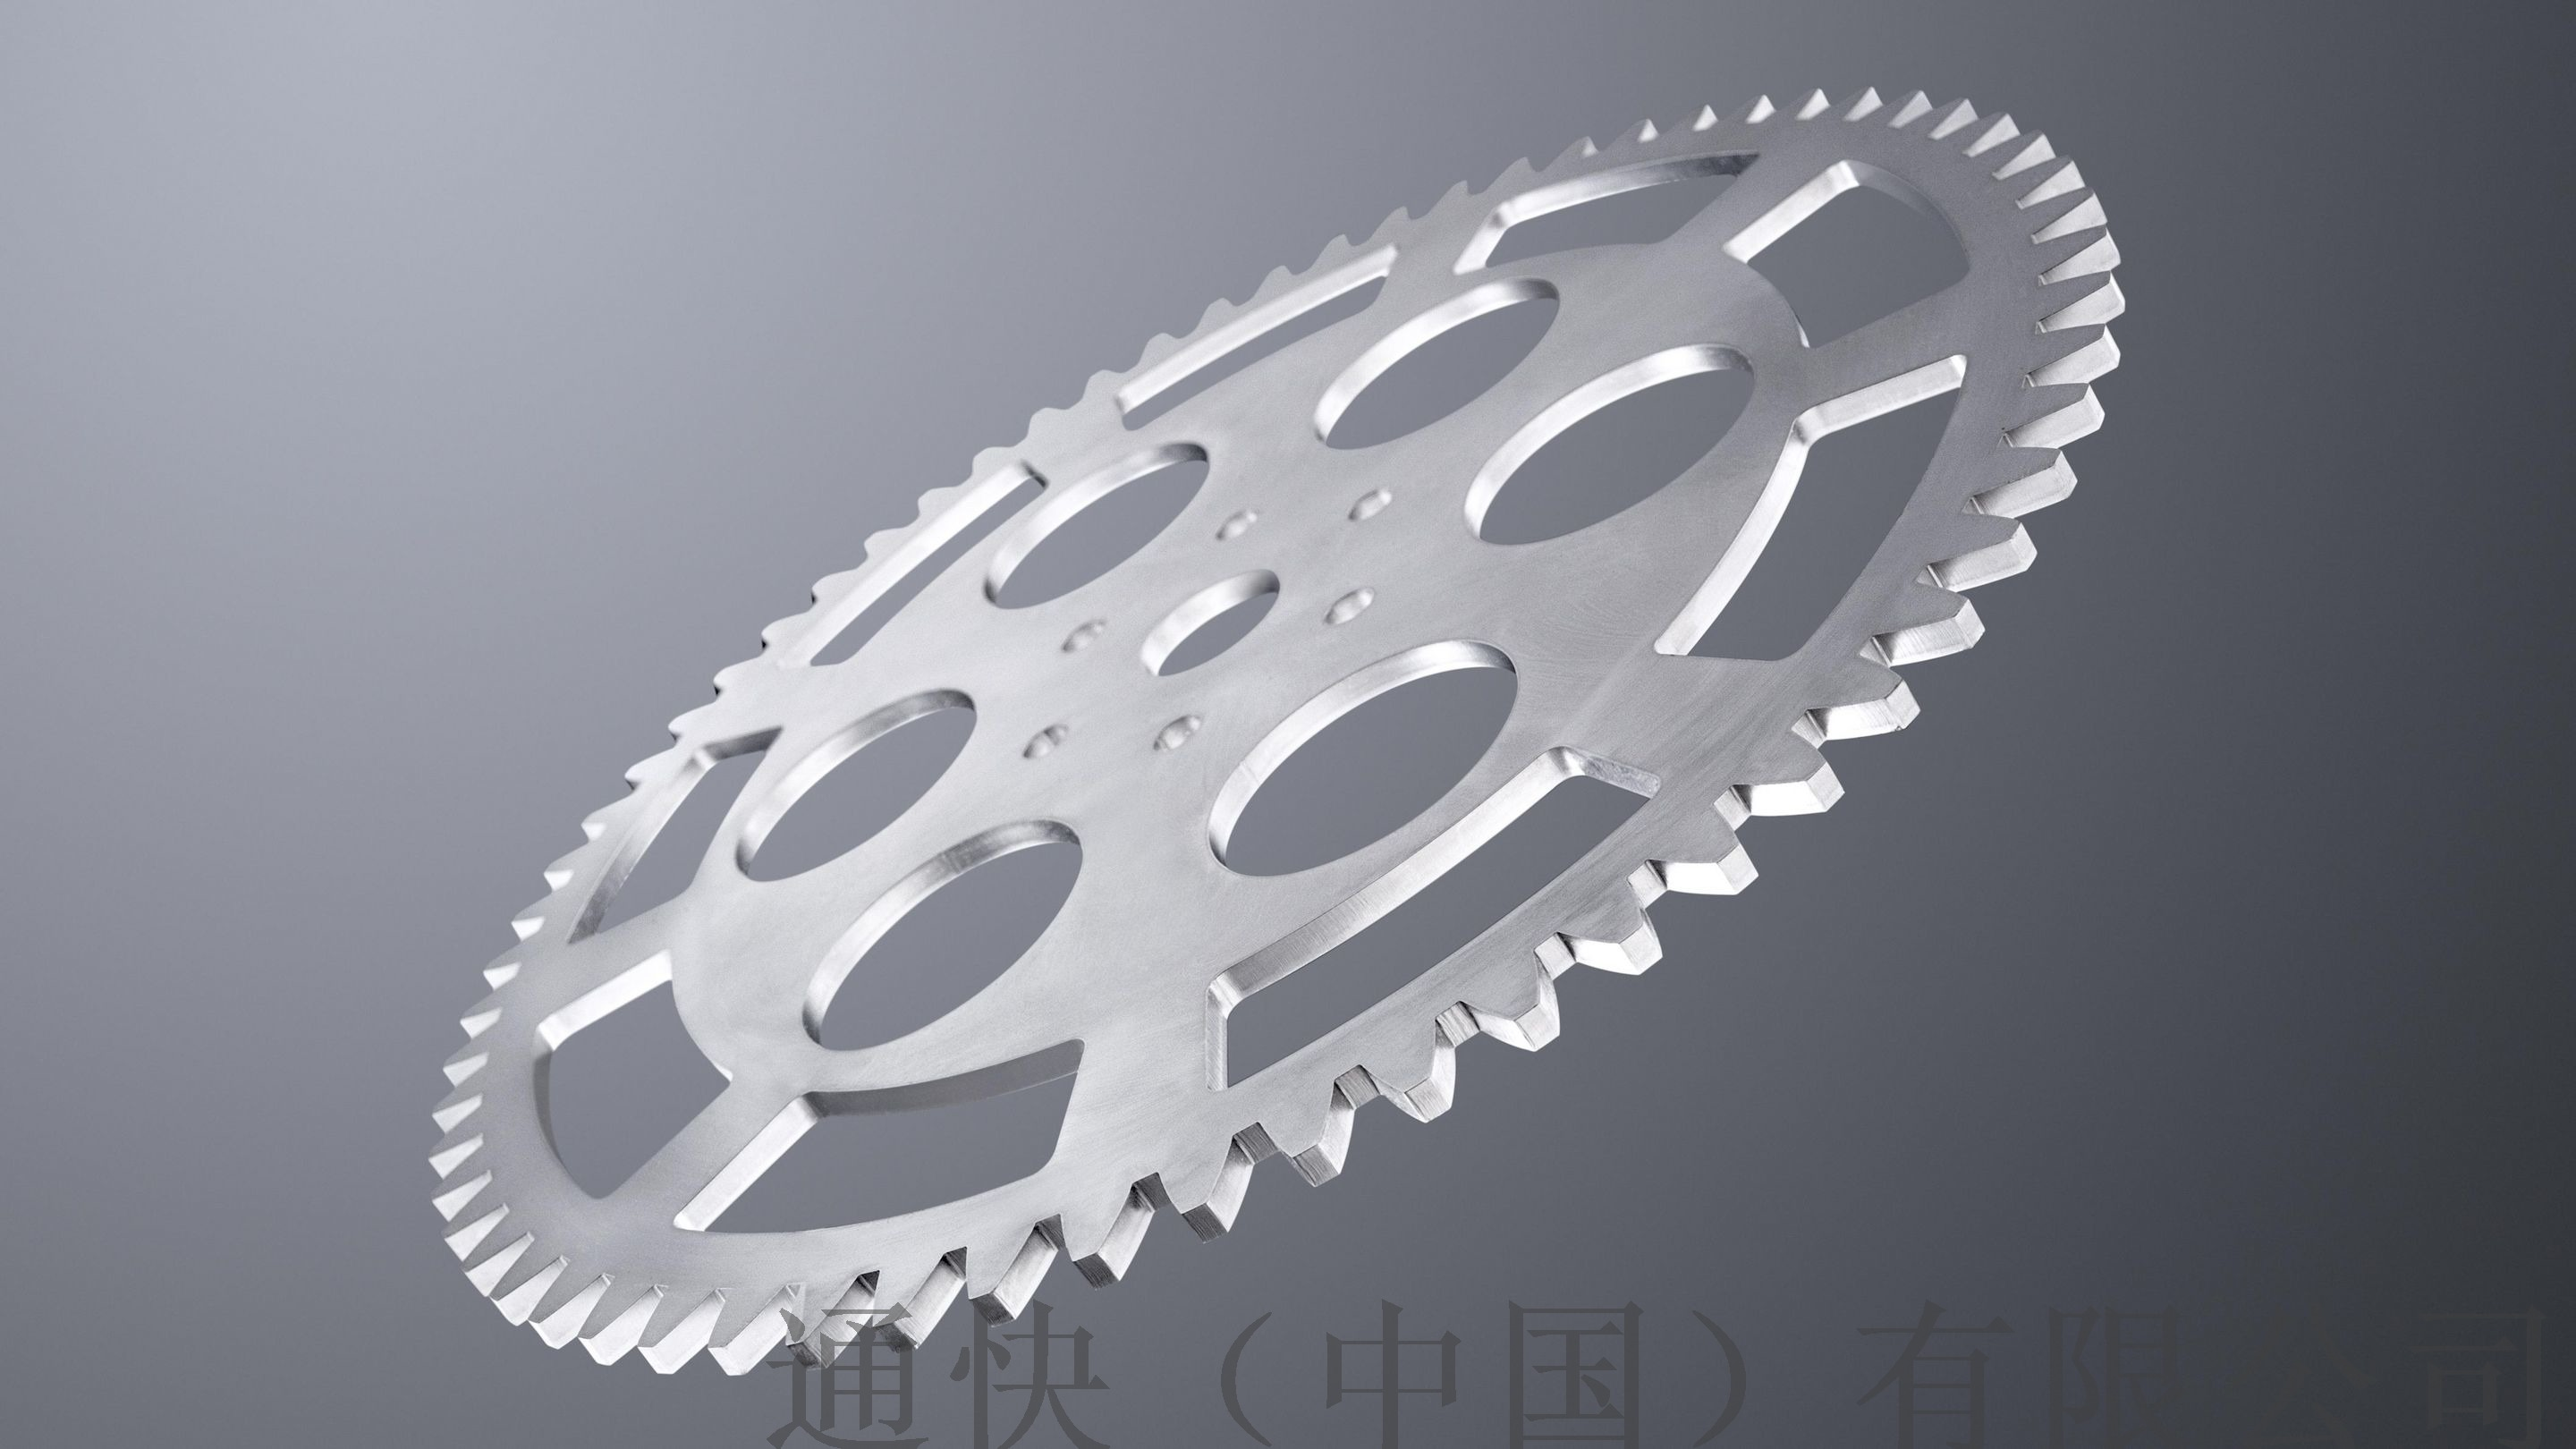 csm_MS-applications-laser-cutting-thin-stainless-steel_c2698f00a4_48e3cc25c1.jpg